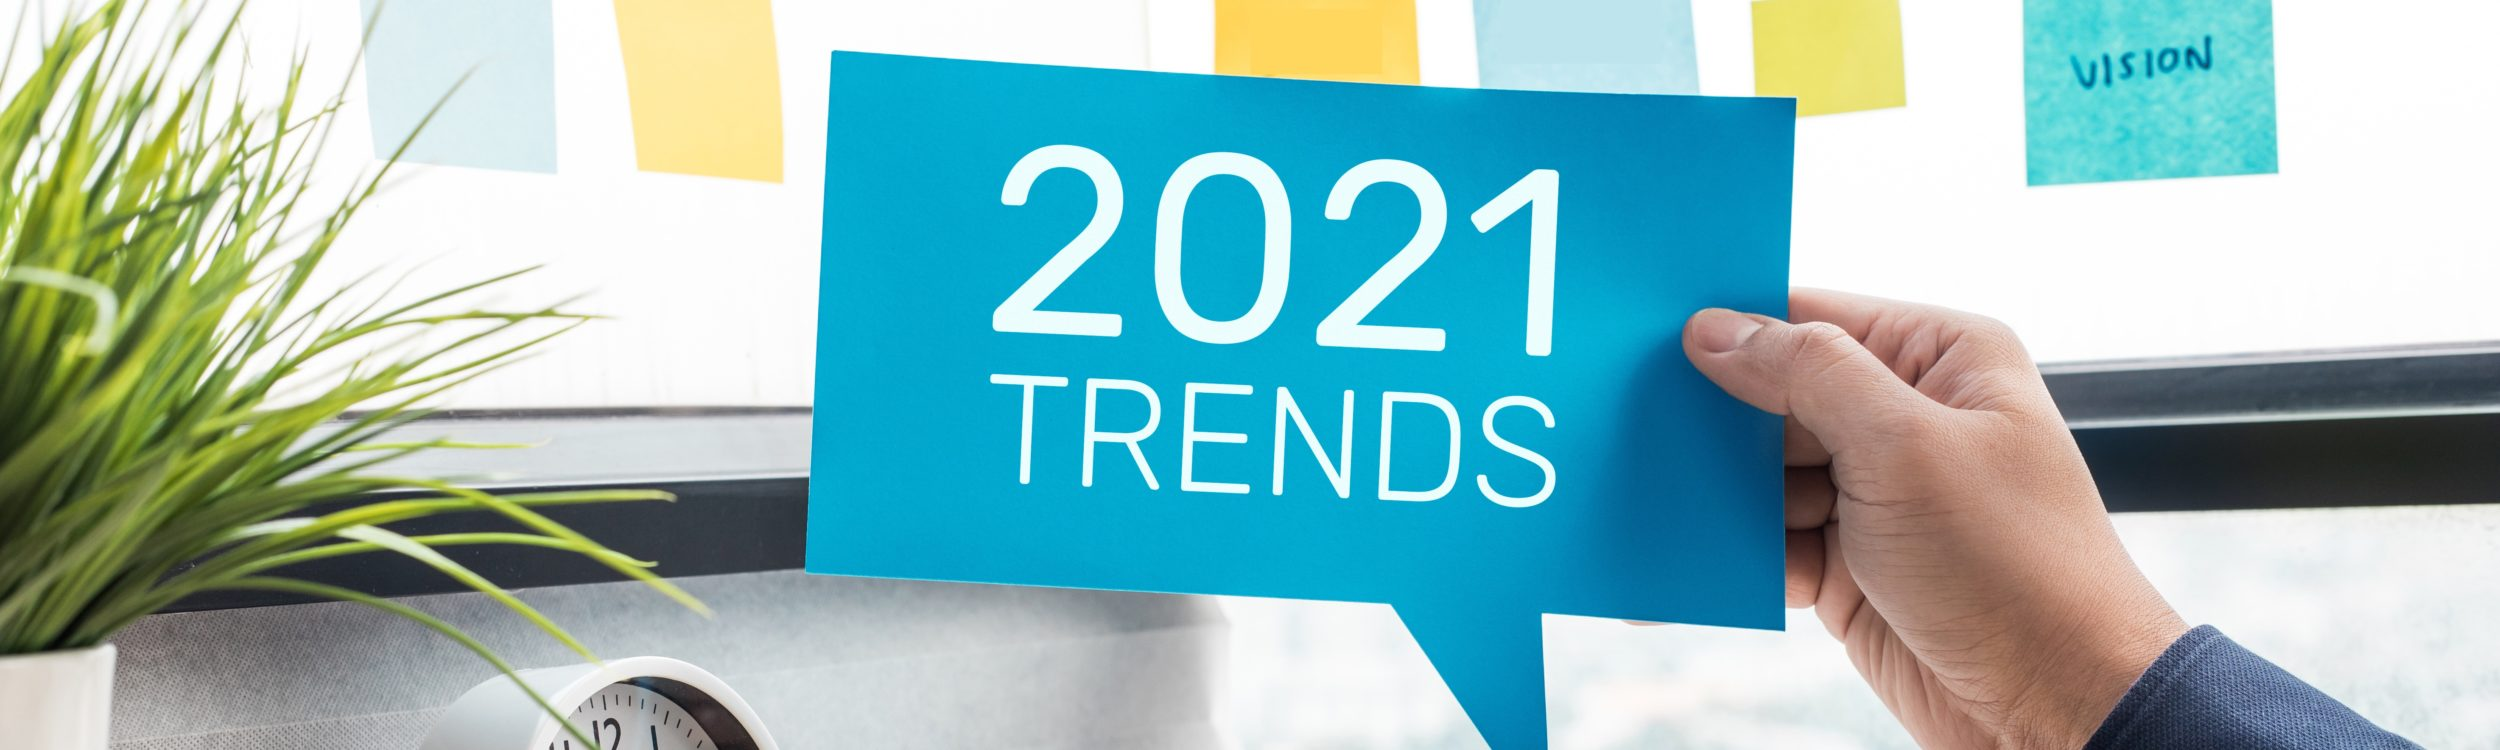 2021 Payroll Trends: Agility, Security, and an Improved Employee Experience featured image